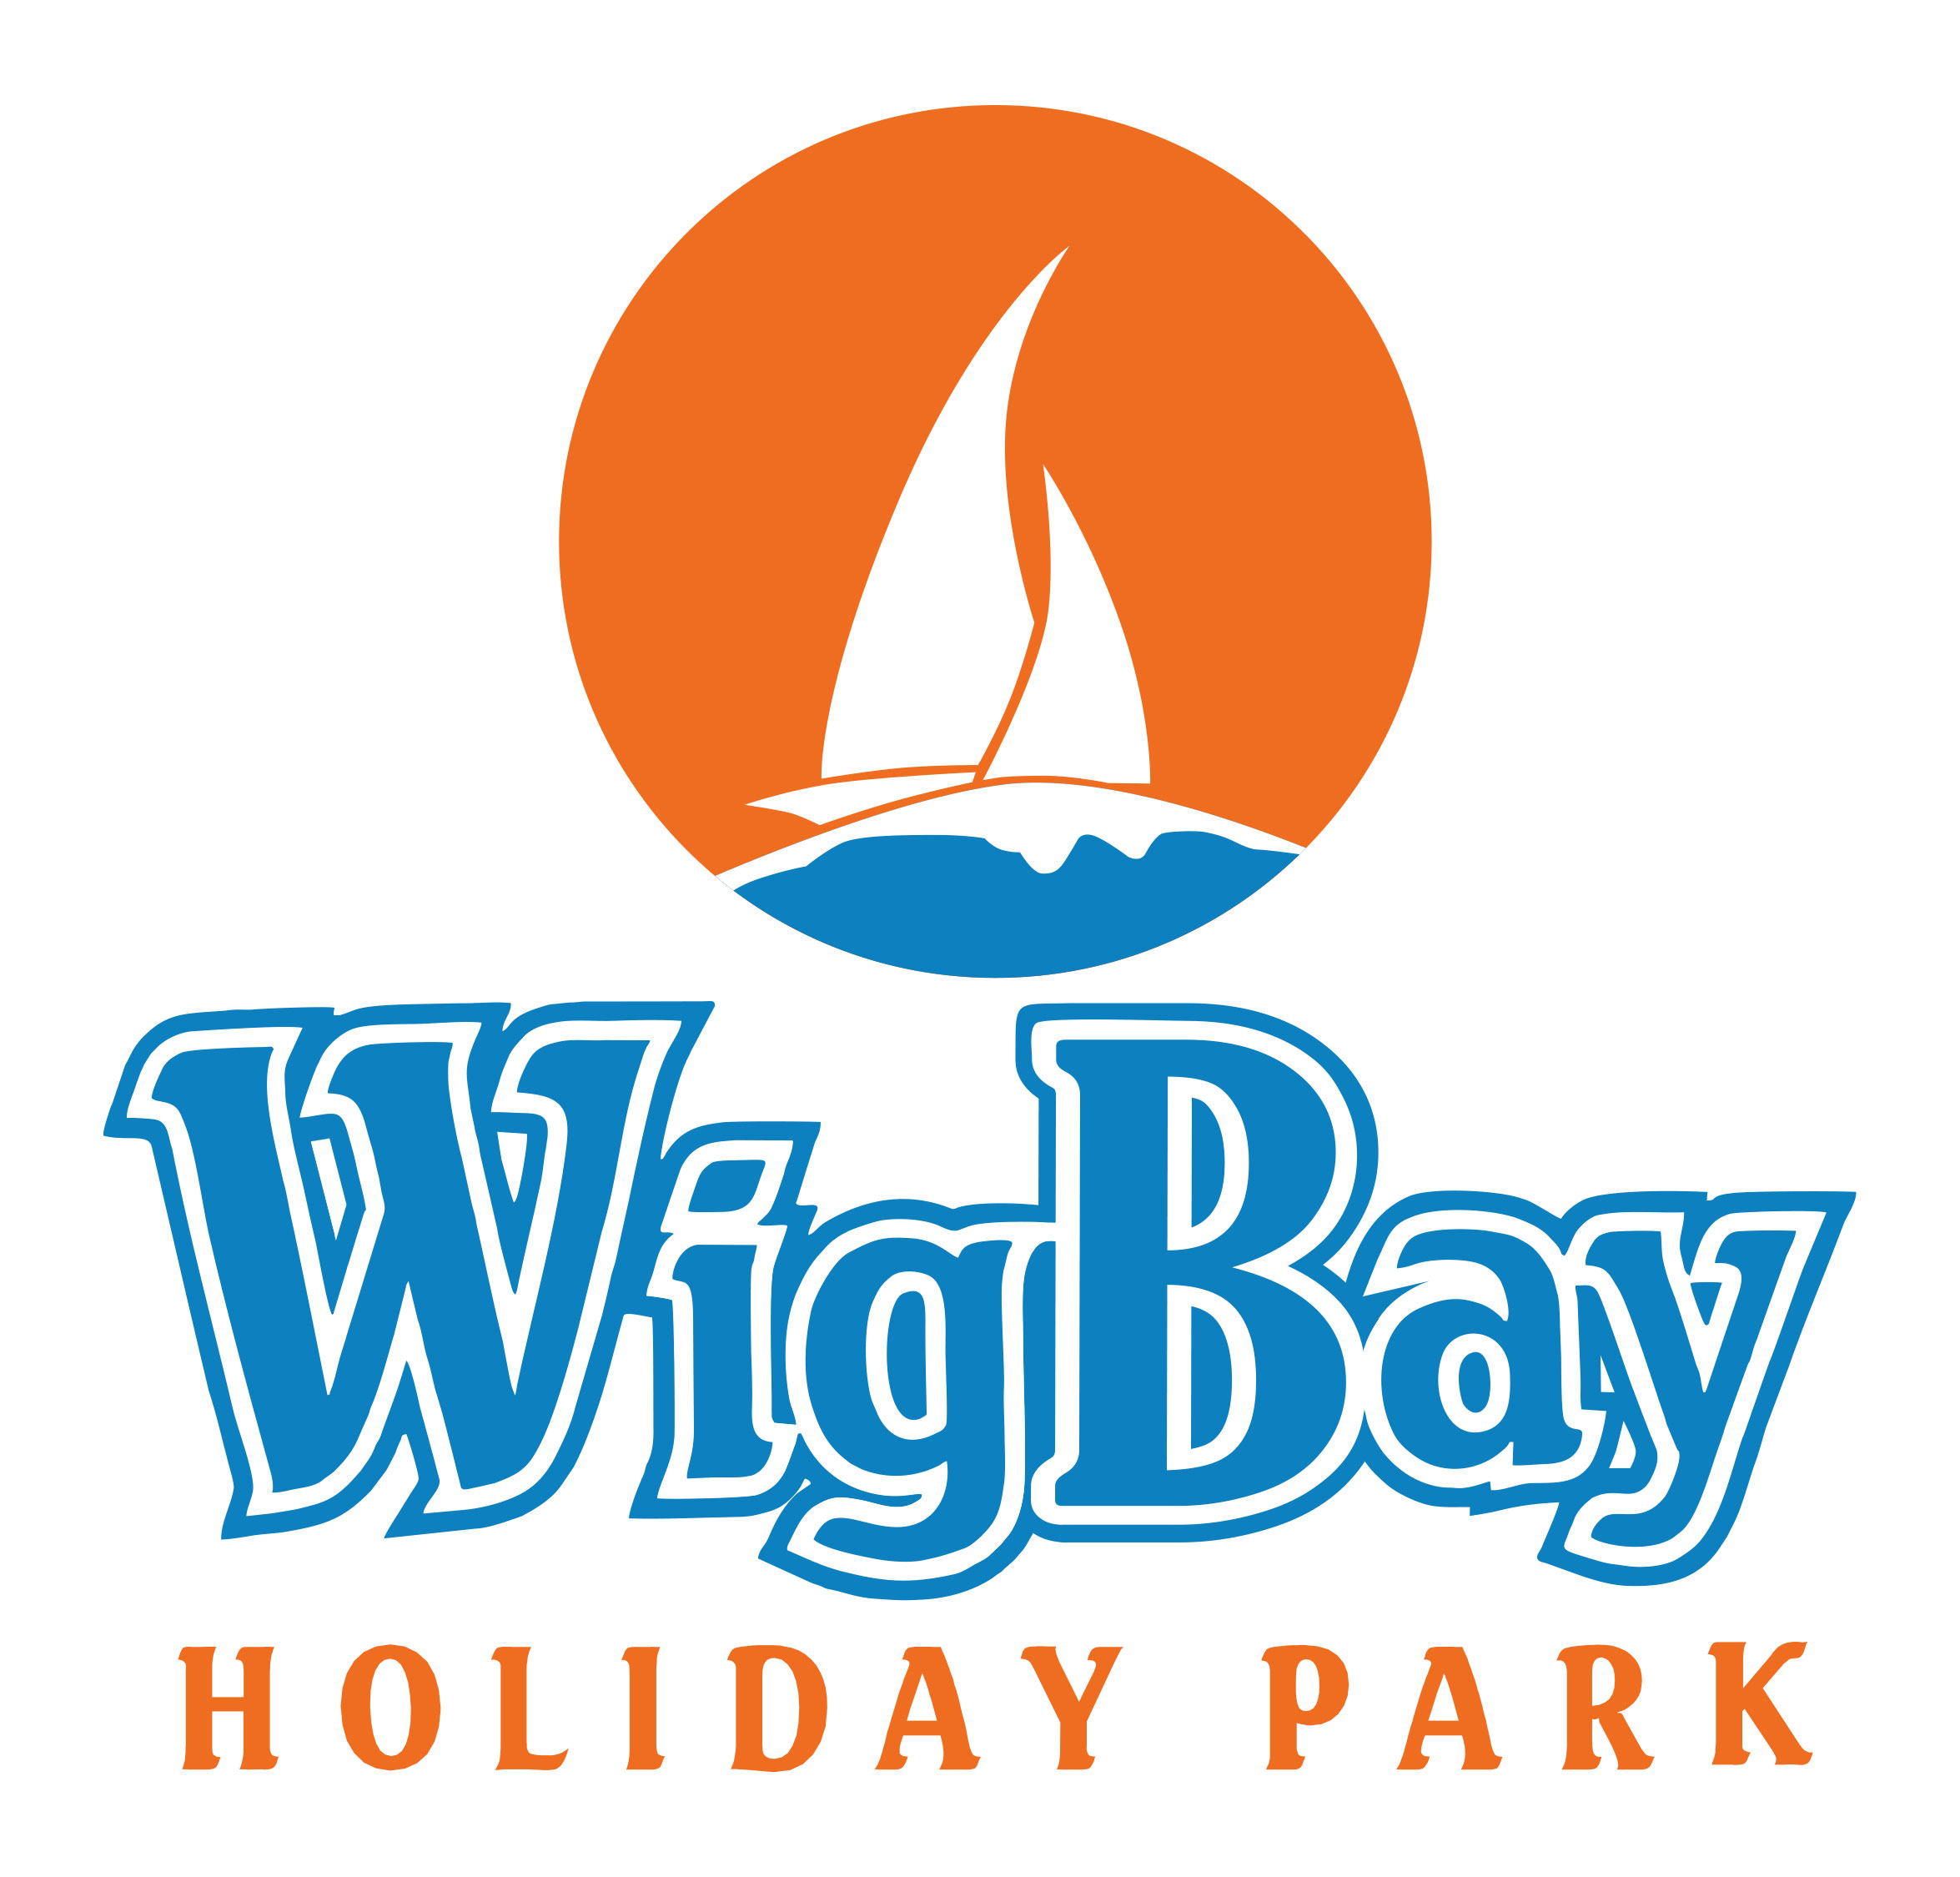 Holidays in Dumfries and Galloway – Wigbay Holiday Park